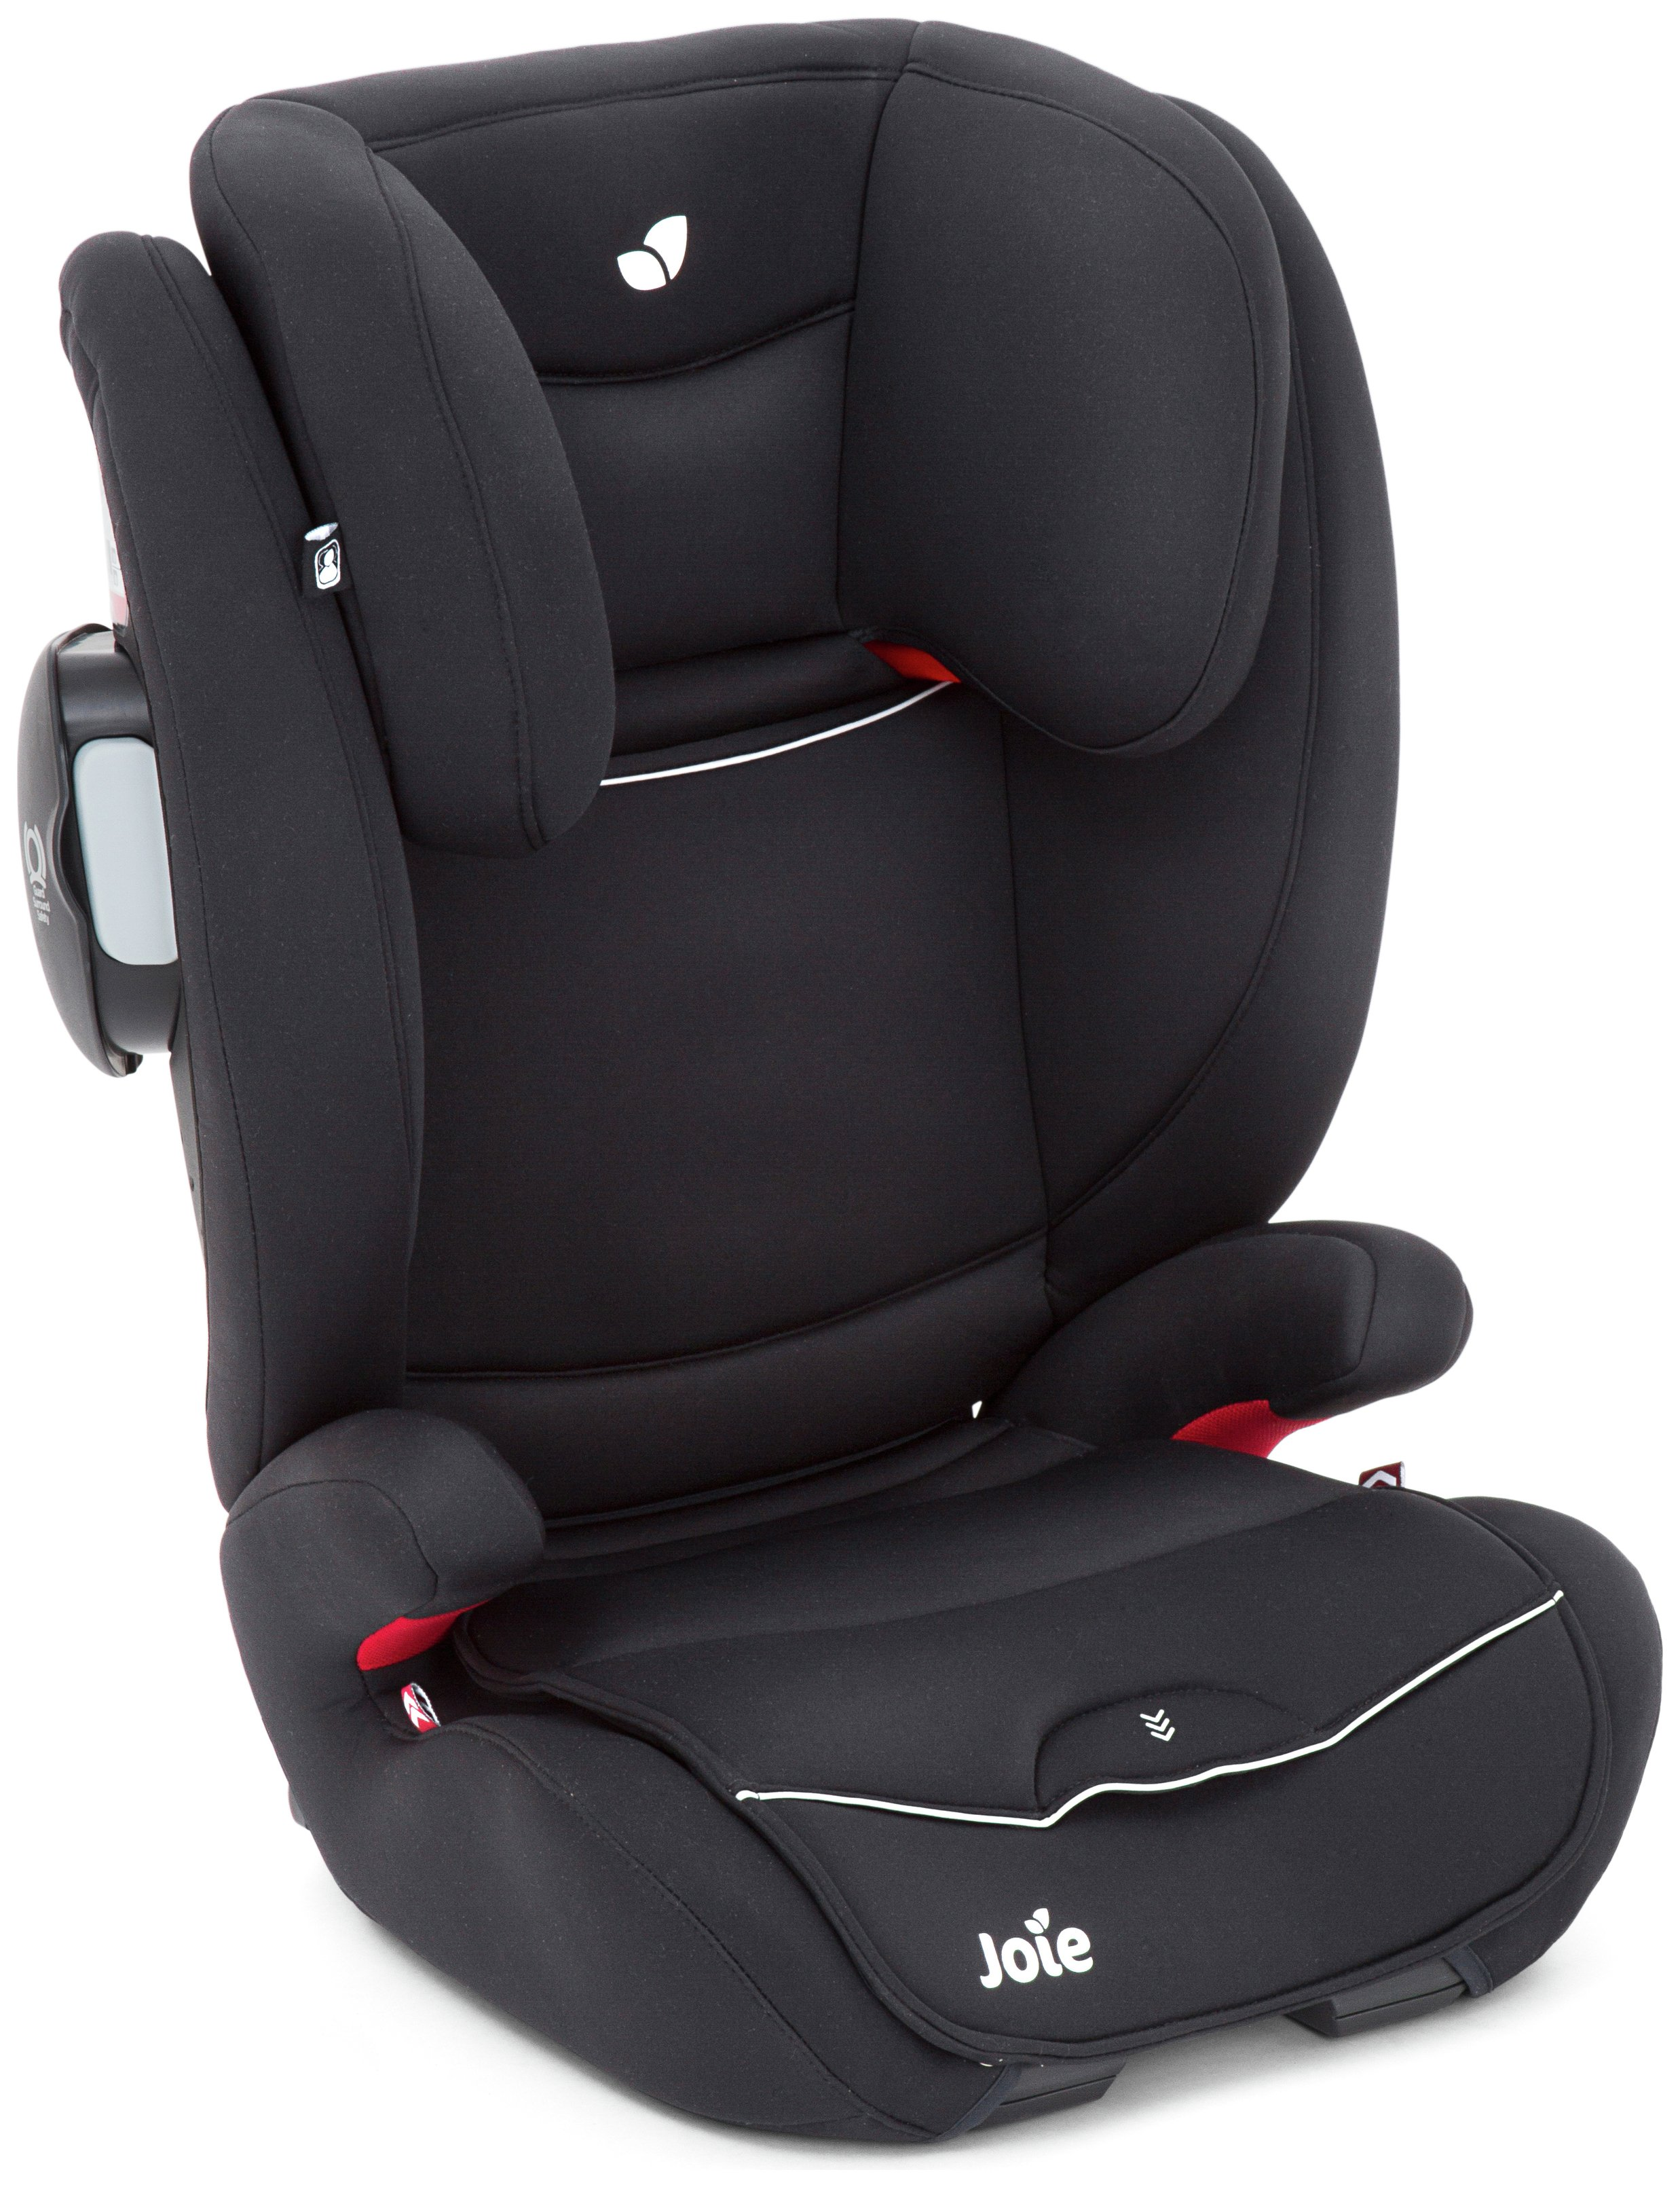 Joie Duallo Group 2/3 Car Seat - Tuxedo Black